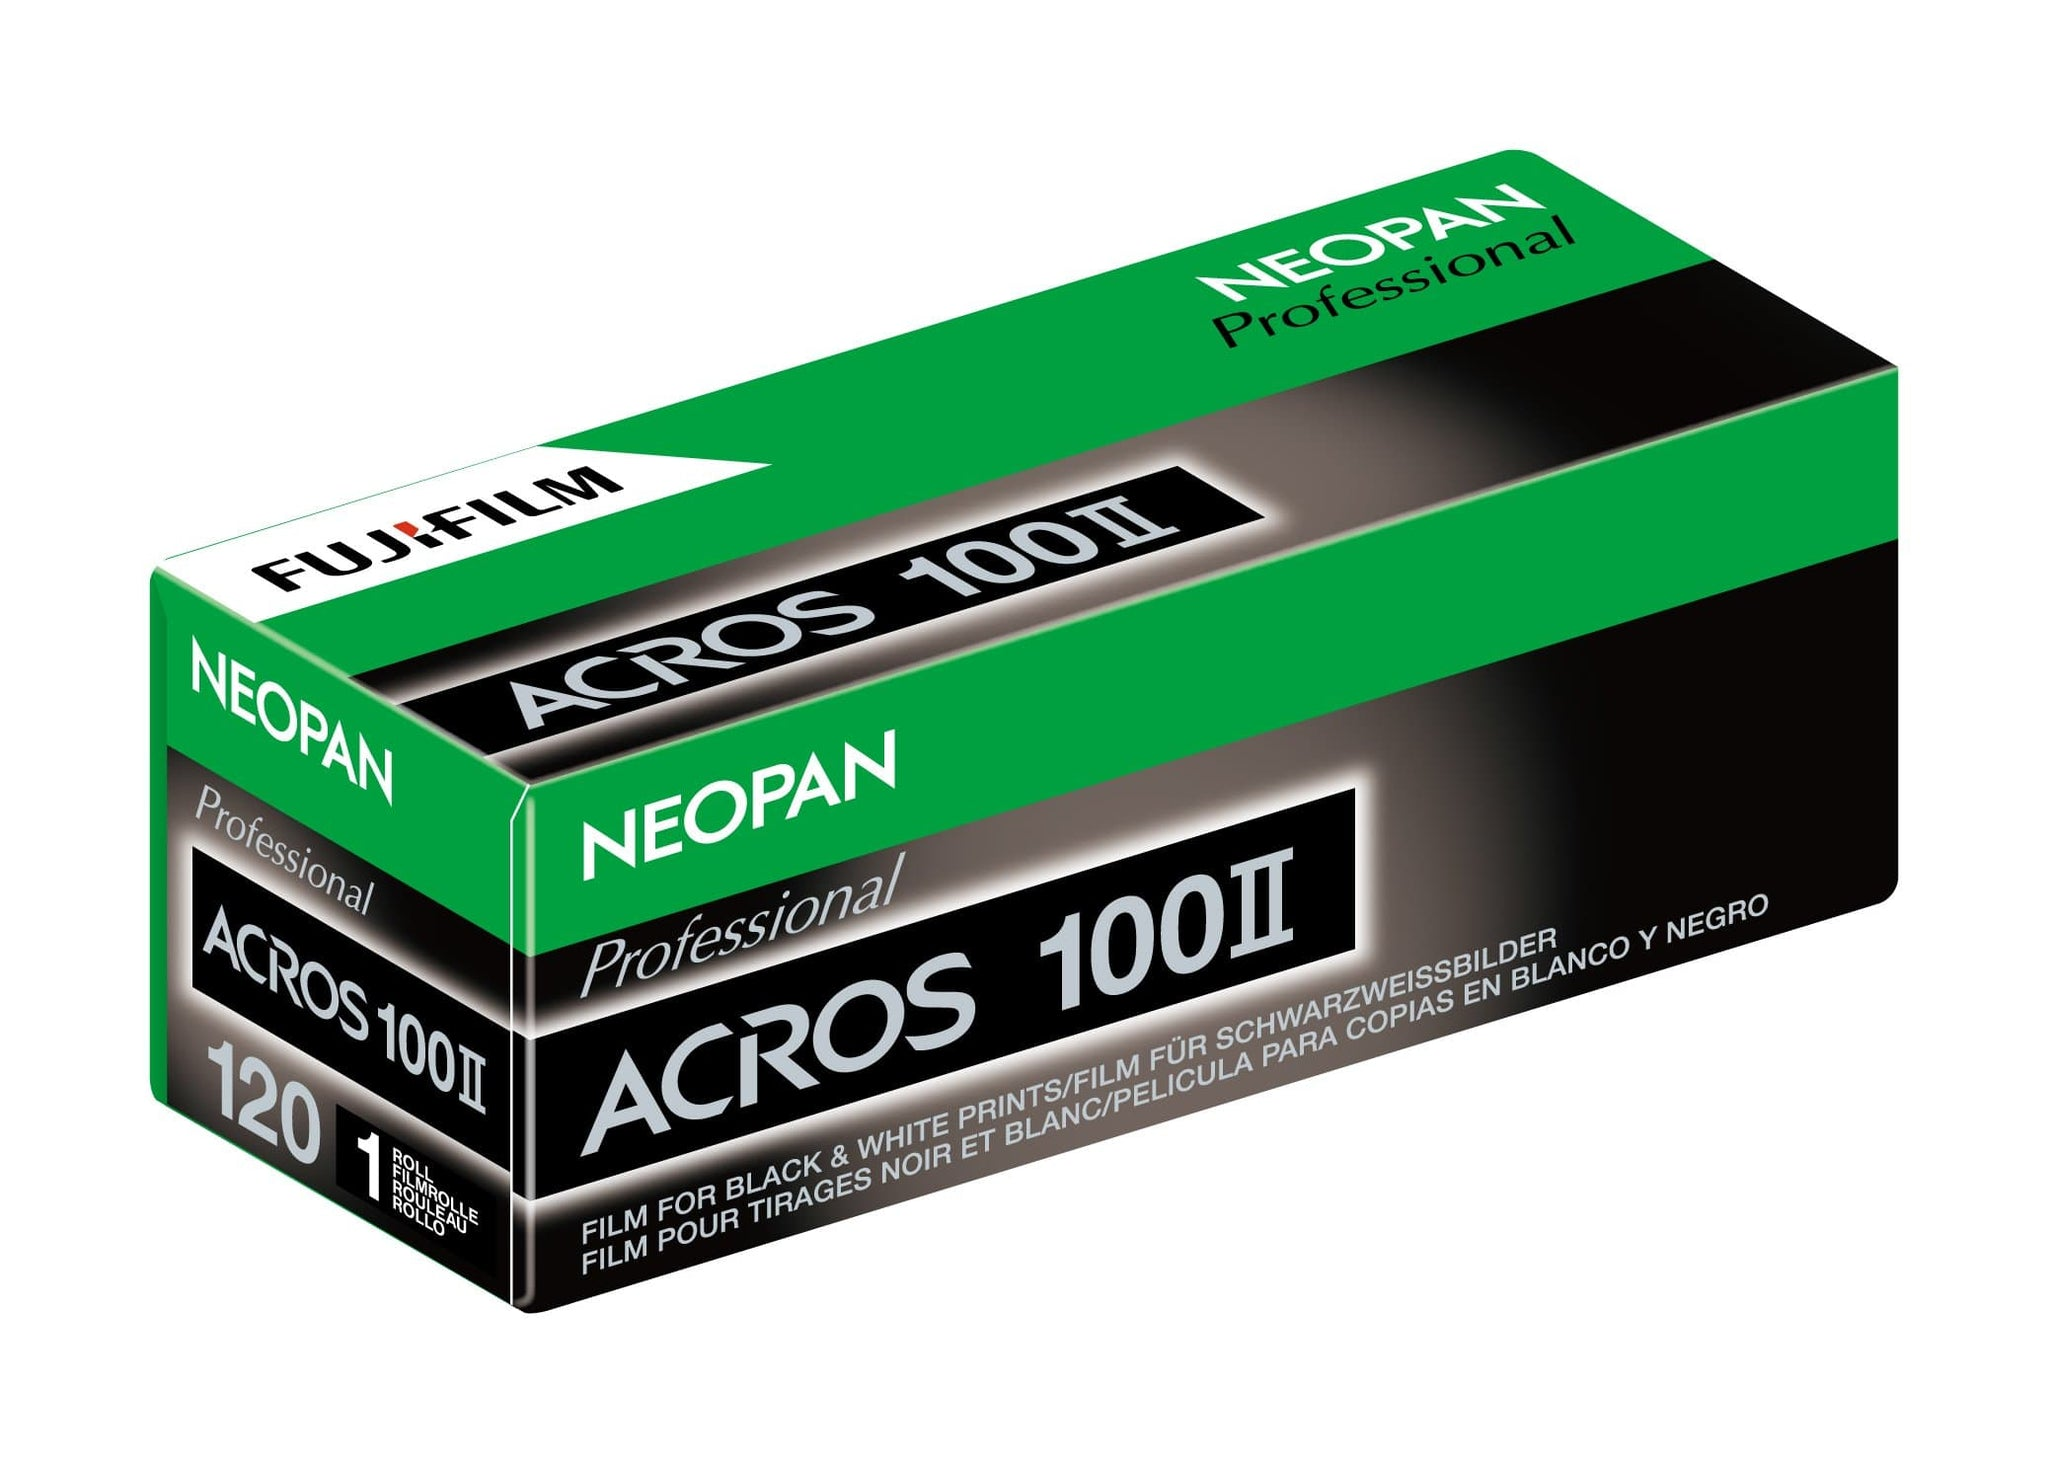 Fujifilm Neopan Acros 100 120mm, Black and White Film (Single Roll Purchase)